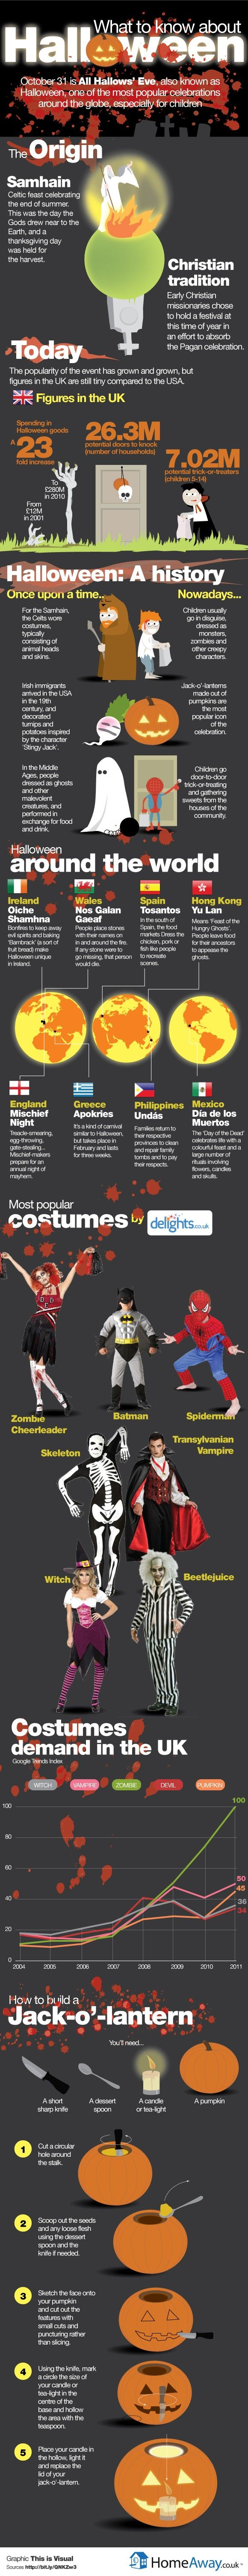 Halloween - Evolution and 10 Most Popular Costumes WorldWide [Infographic]